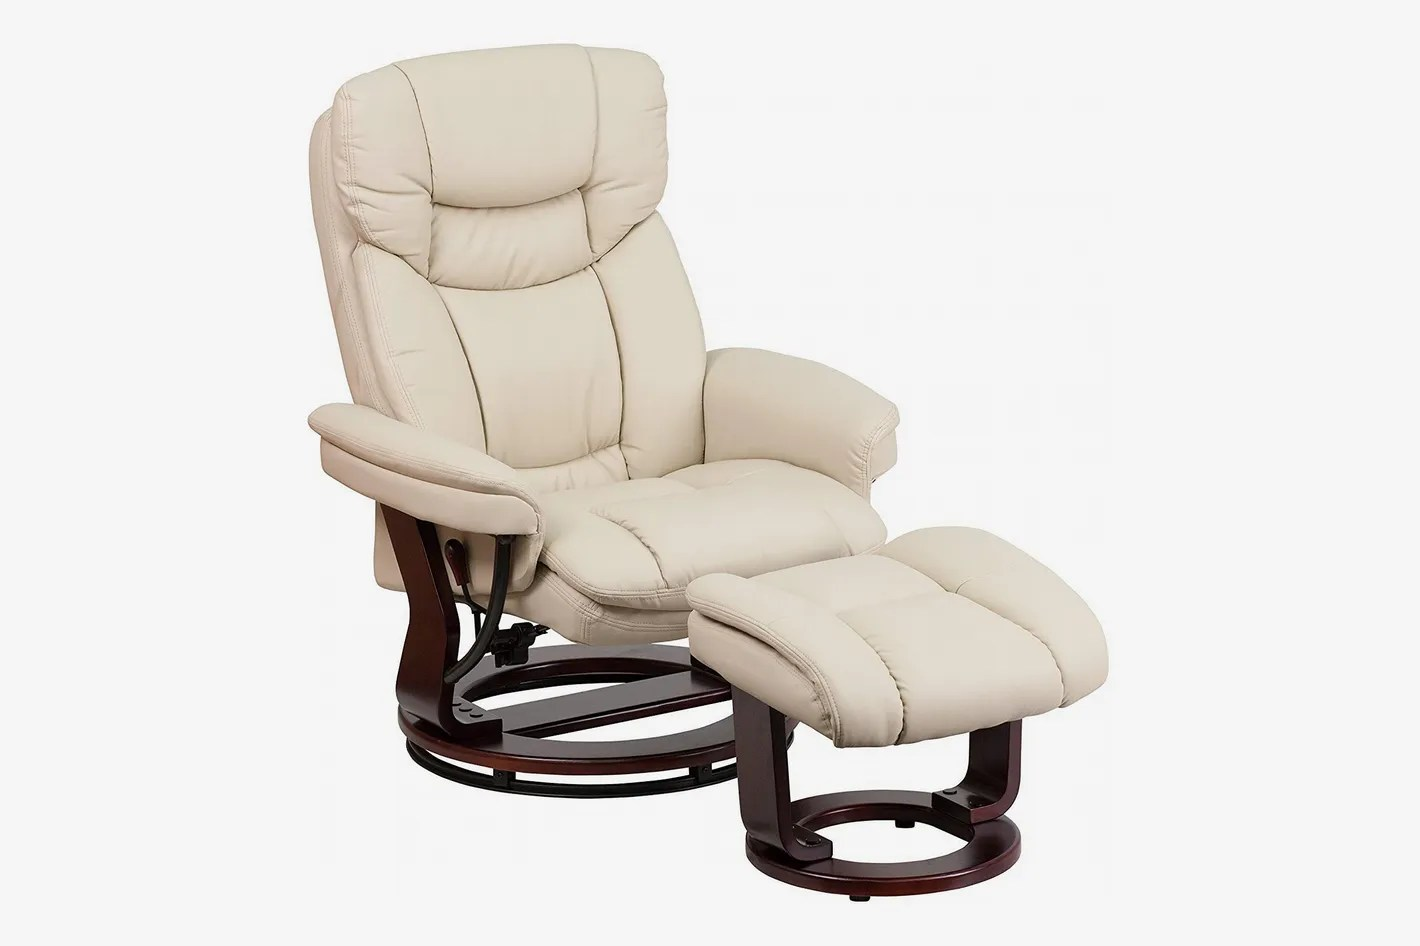 Chair Leather Reclining Swivel Flash Furniture Contemporary Beige Leather Recliner And Ottoman With Swiveling Base